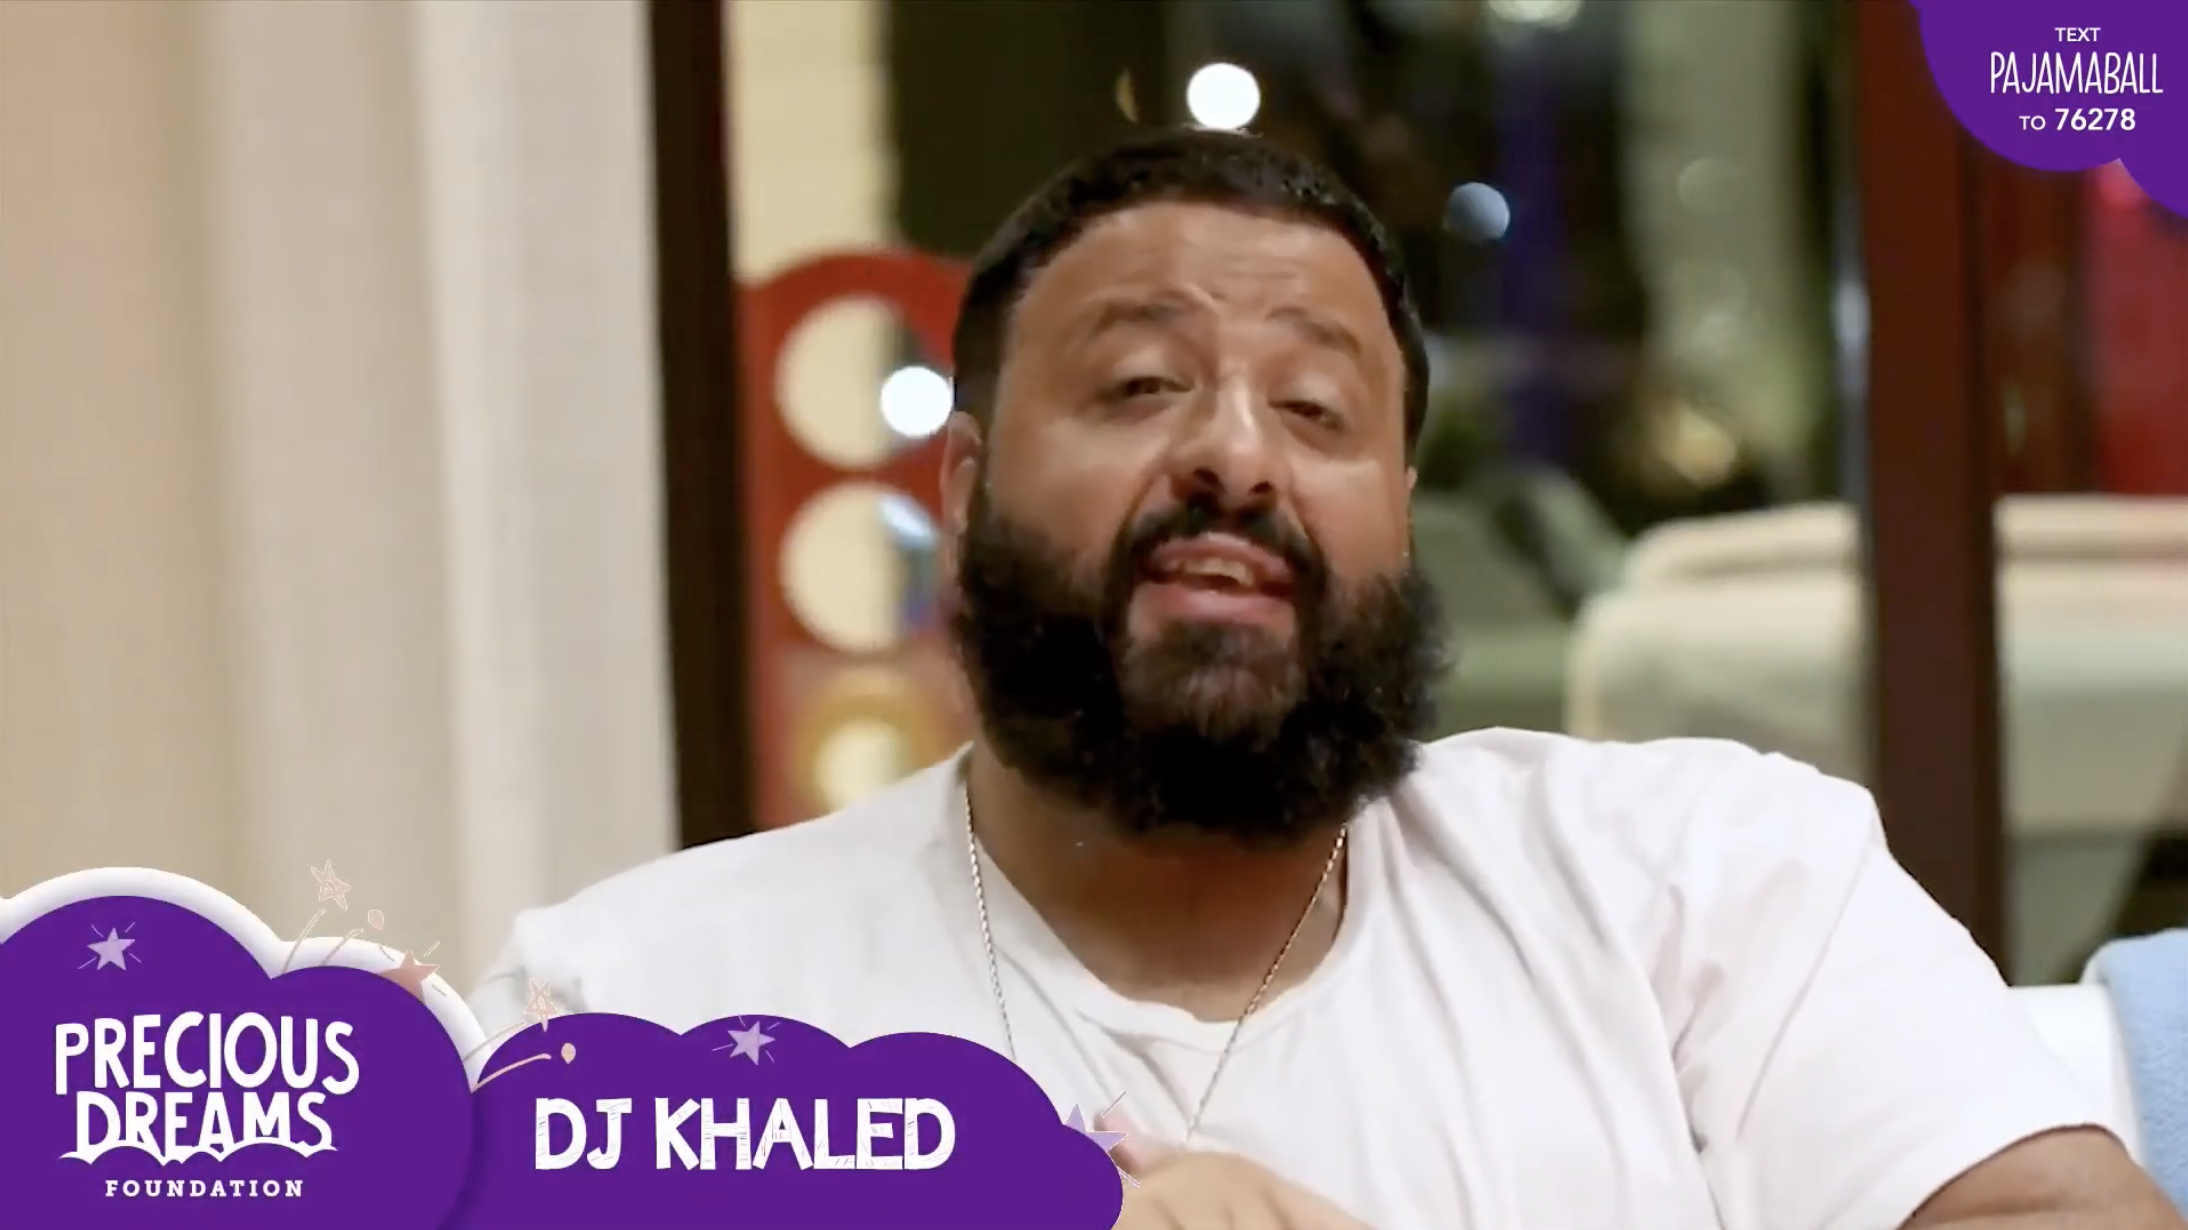 DJ Khaled showing support for Precious Dreams Foundation